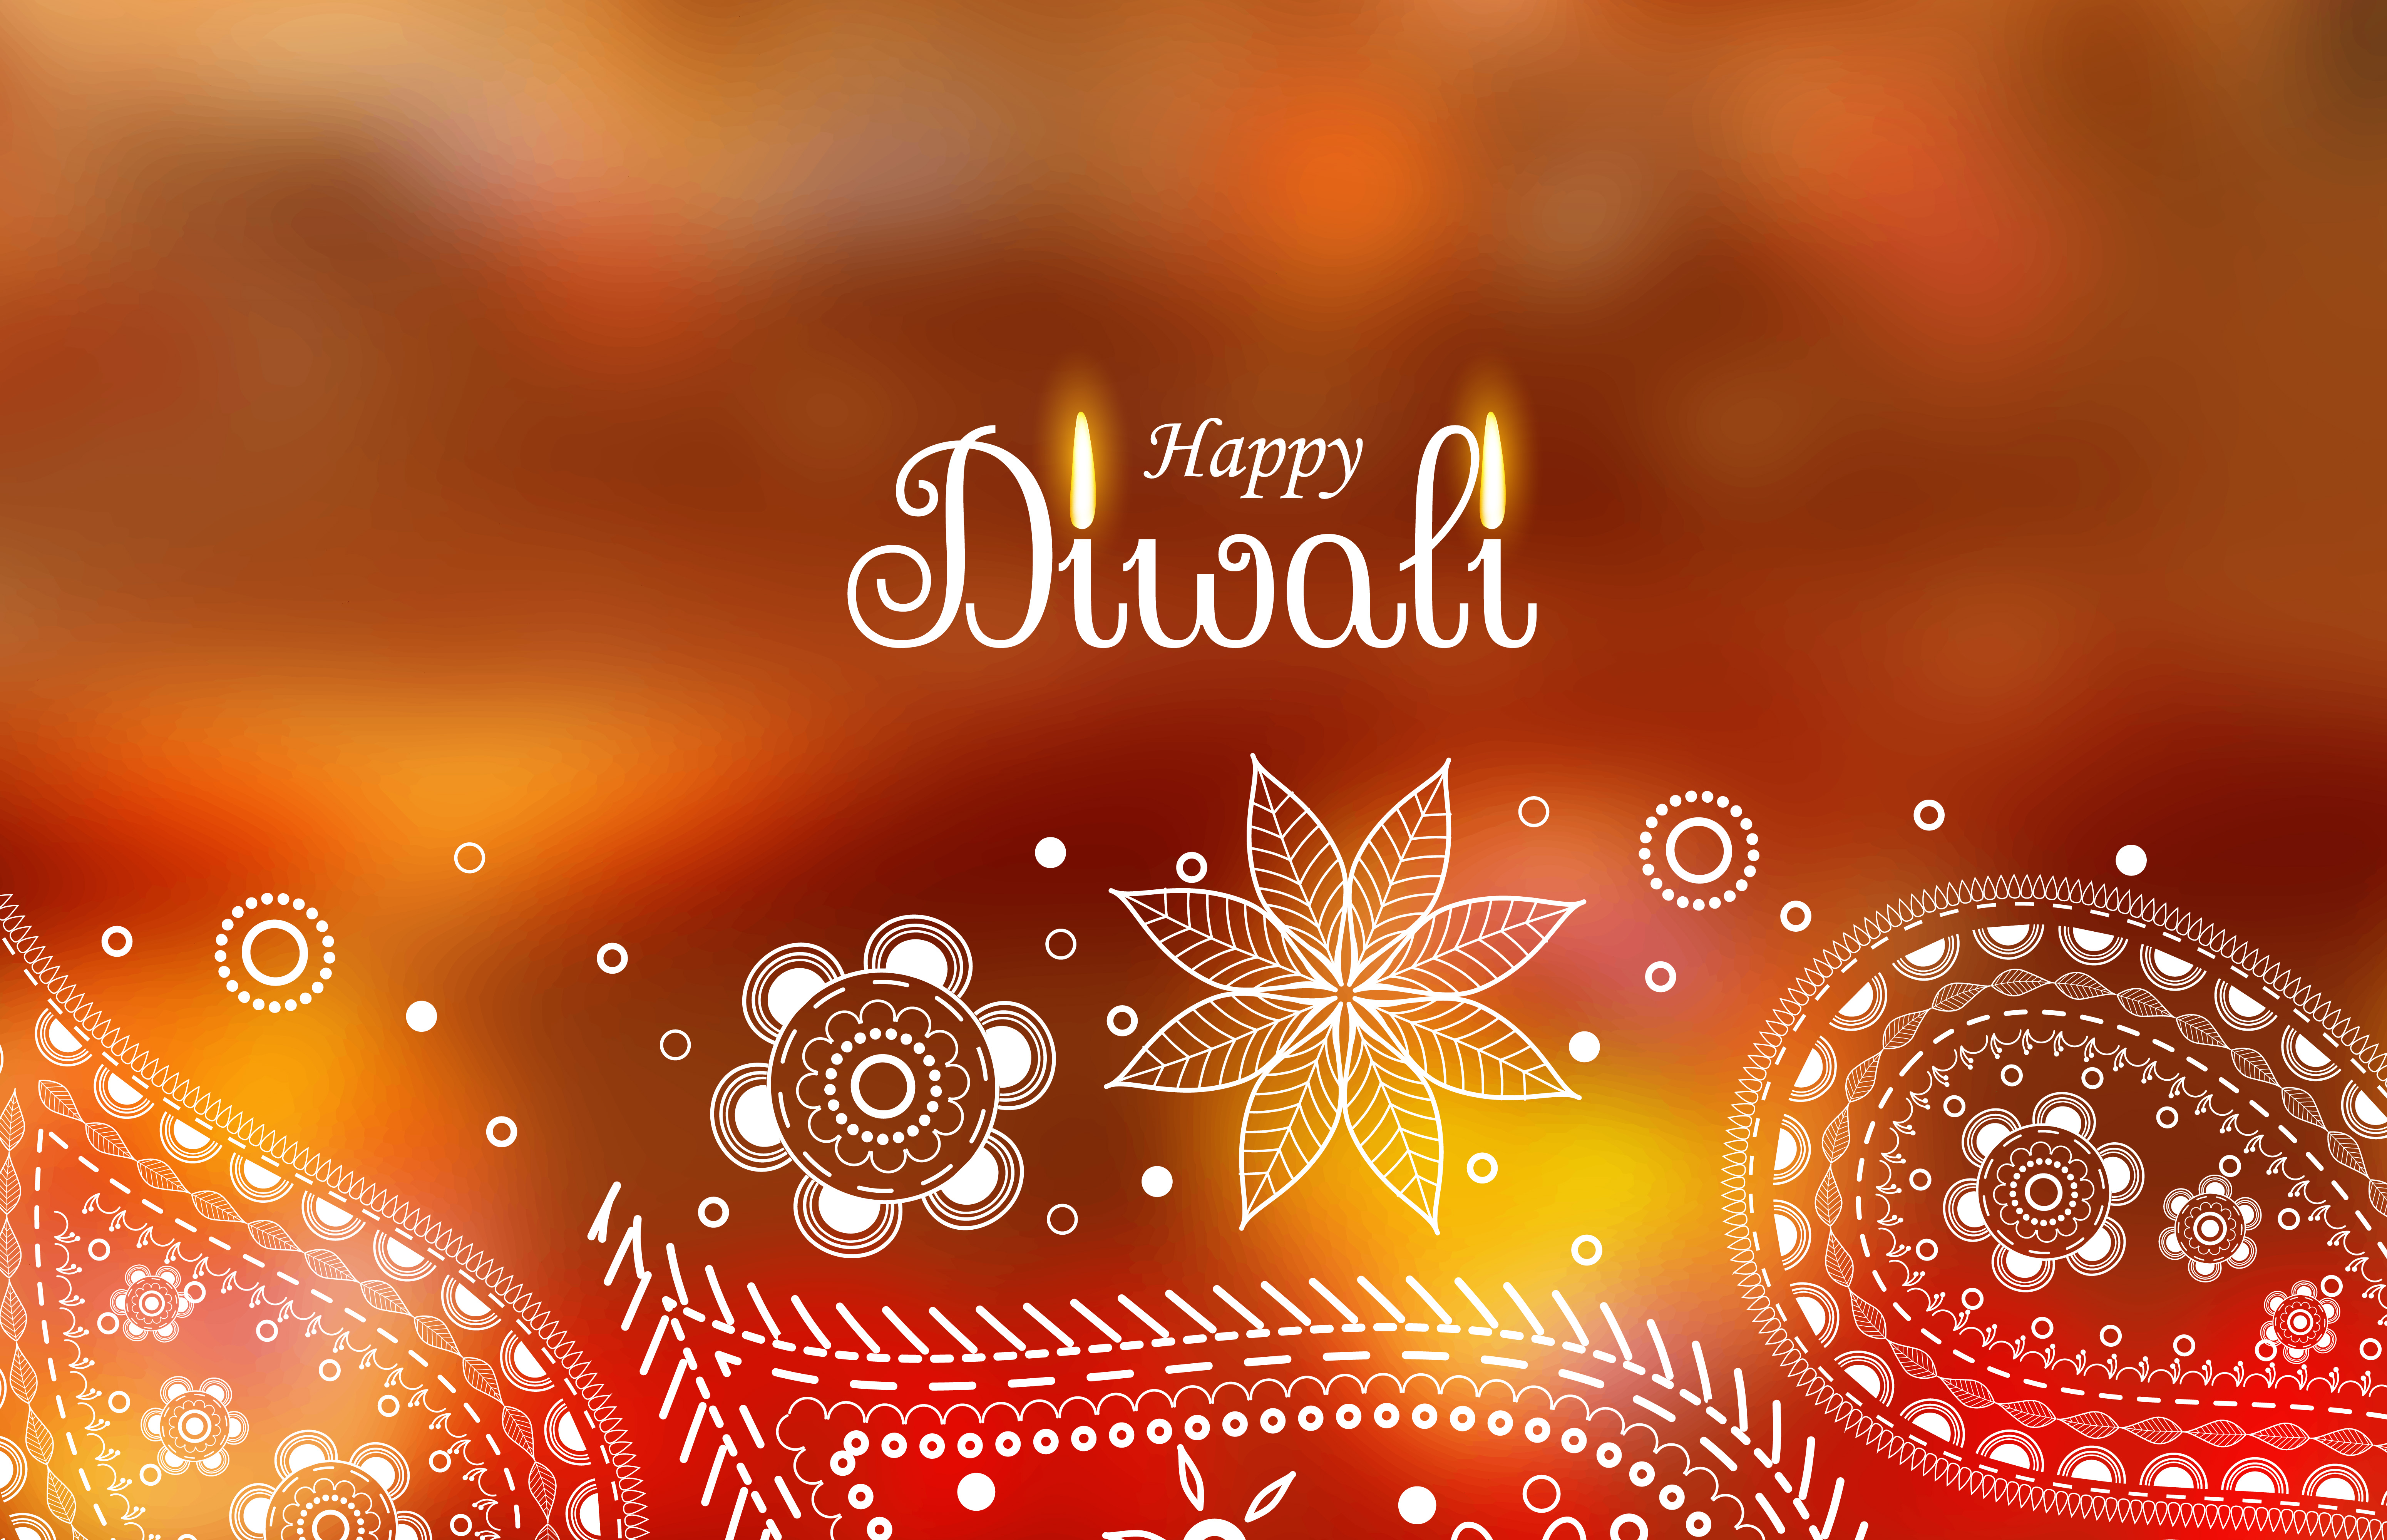 Diwali Greeting Wallpaper With Paisley Decoration Download Free